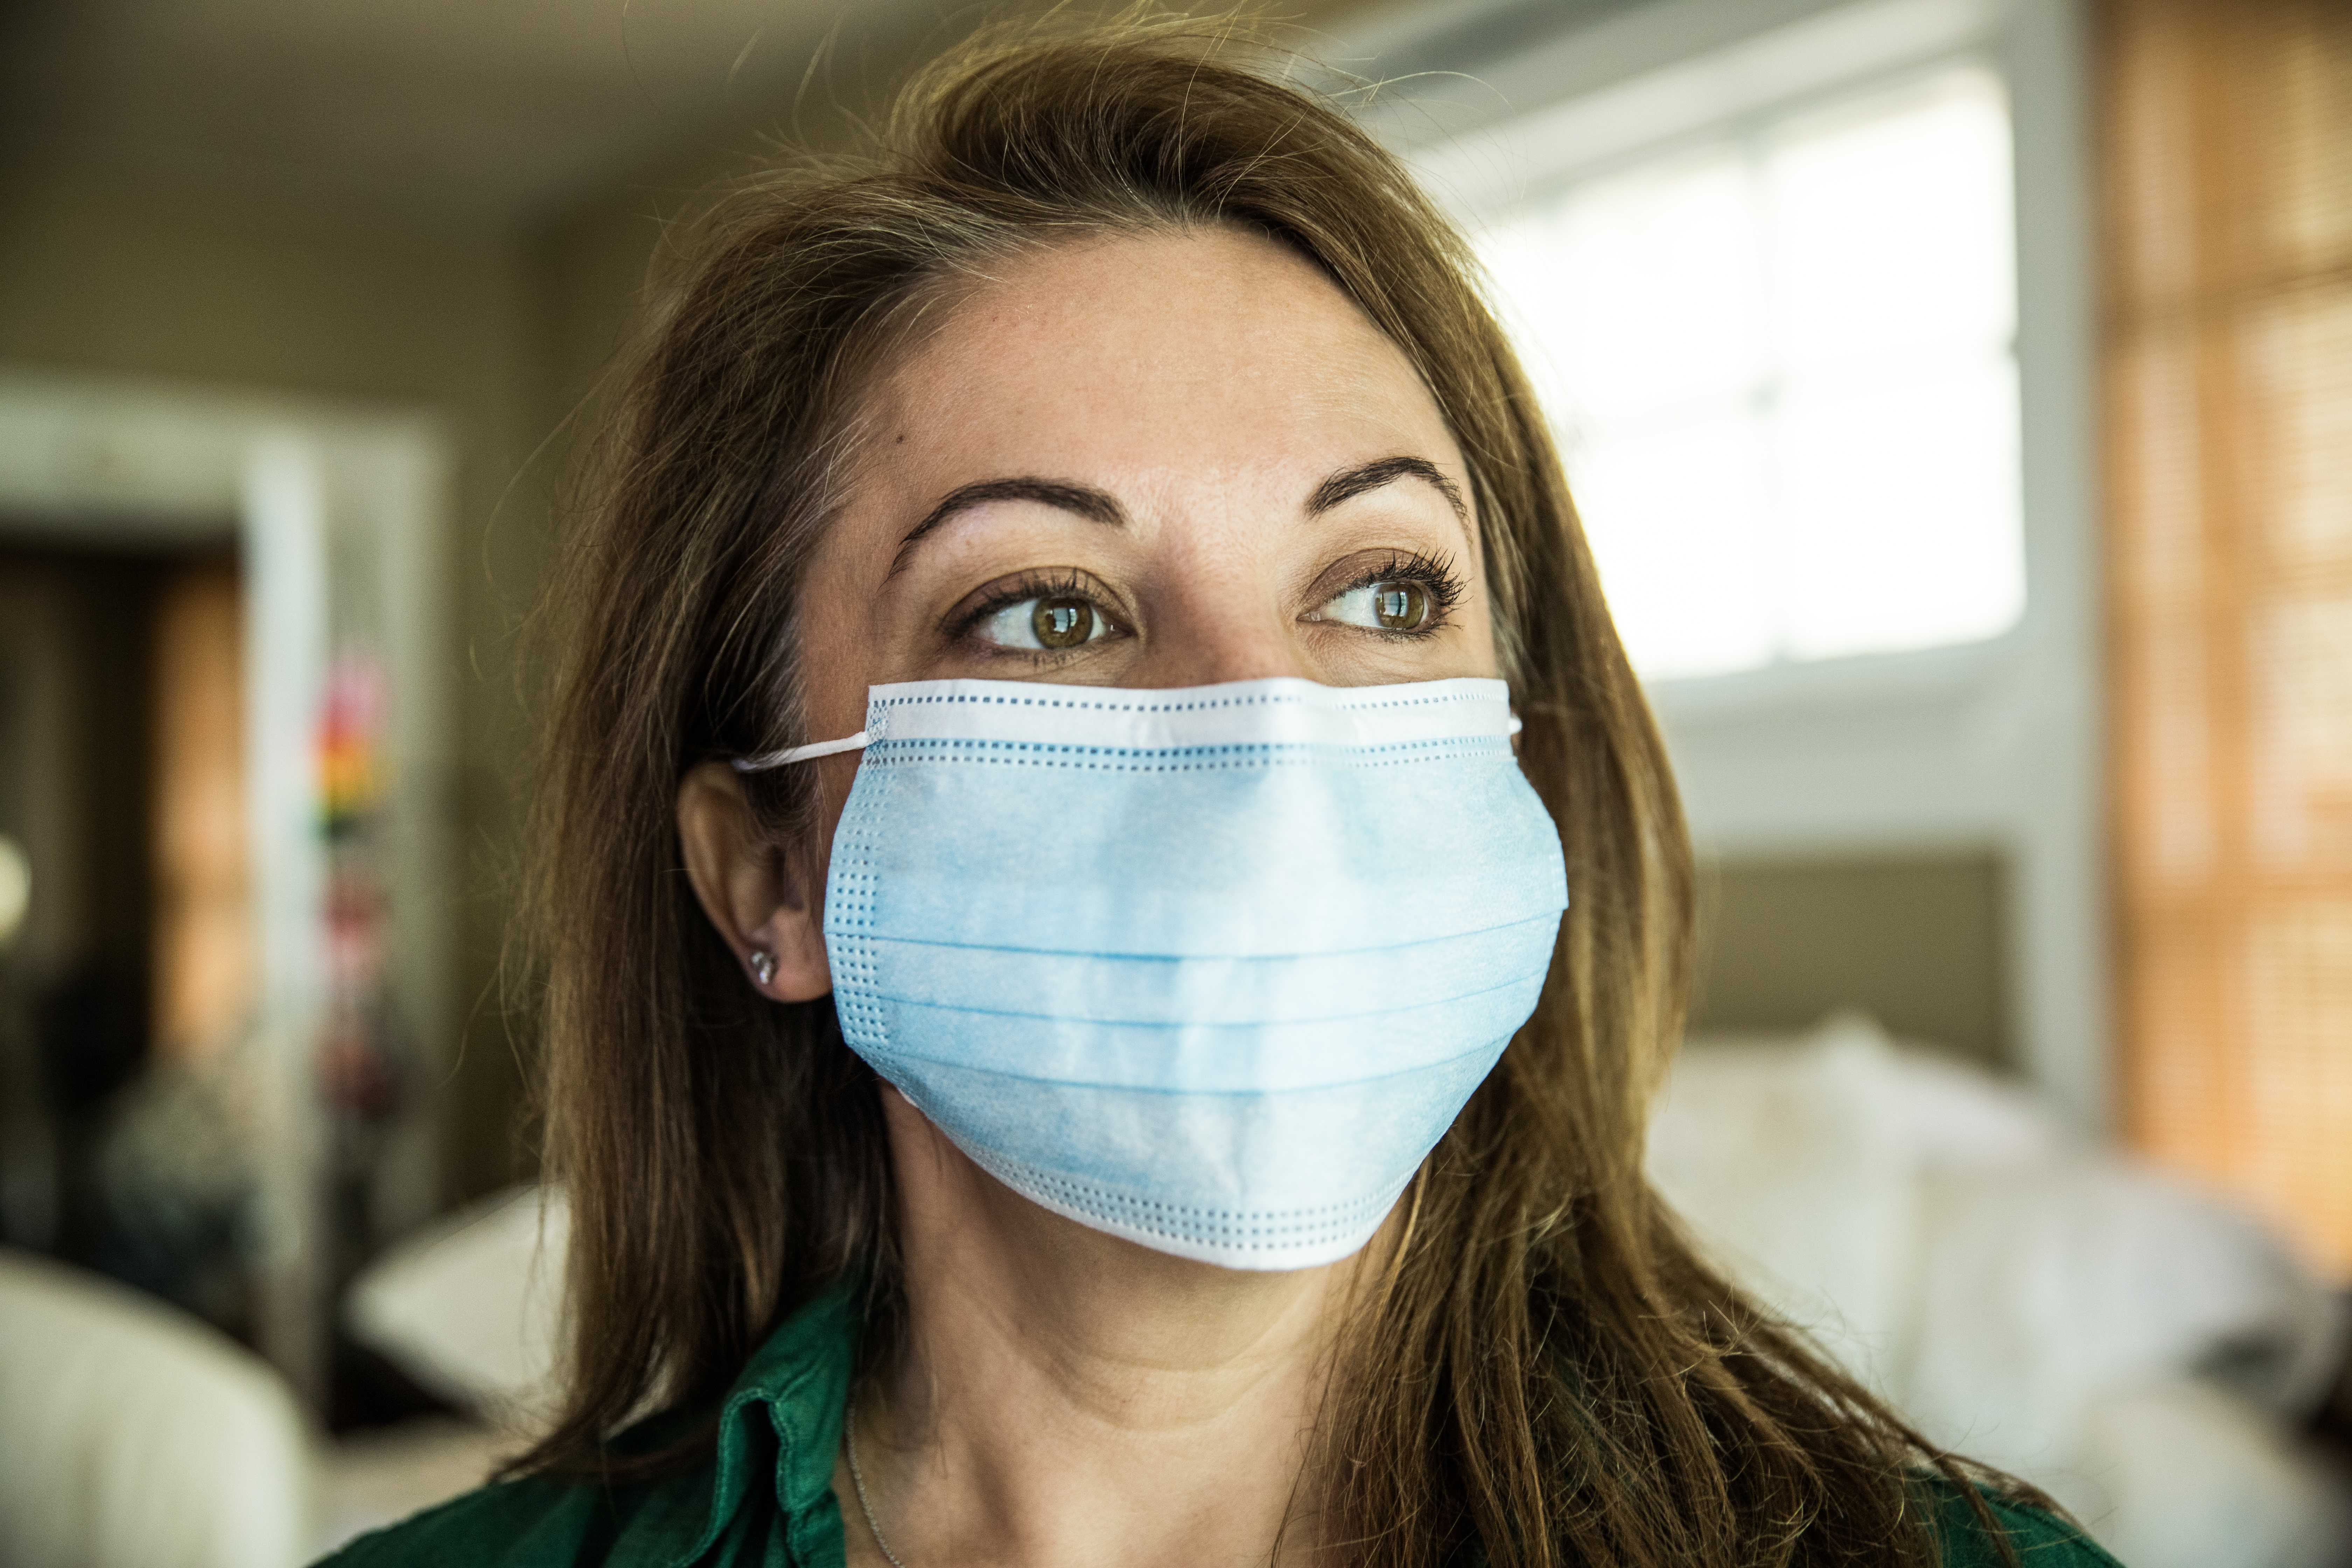 Vaccinated or not, MultCo recommends wearing masks